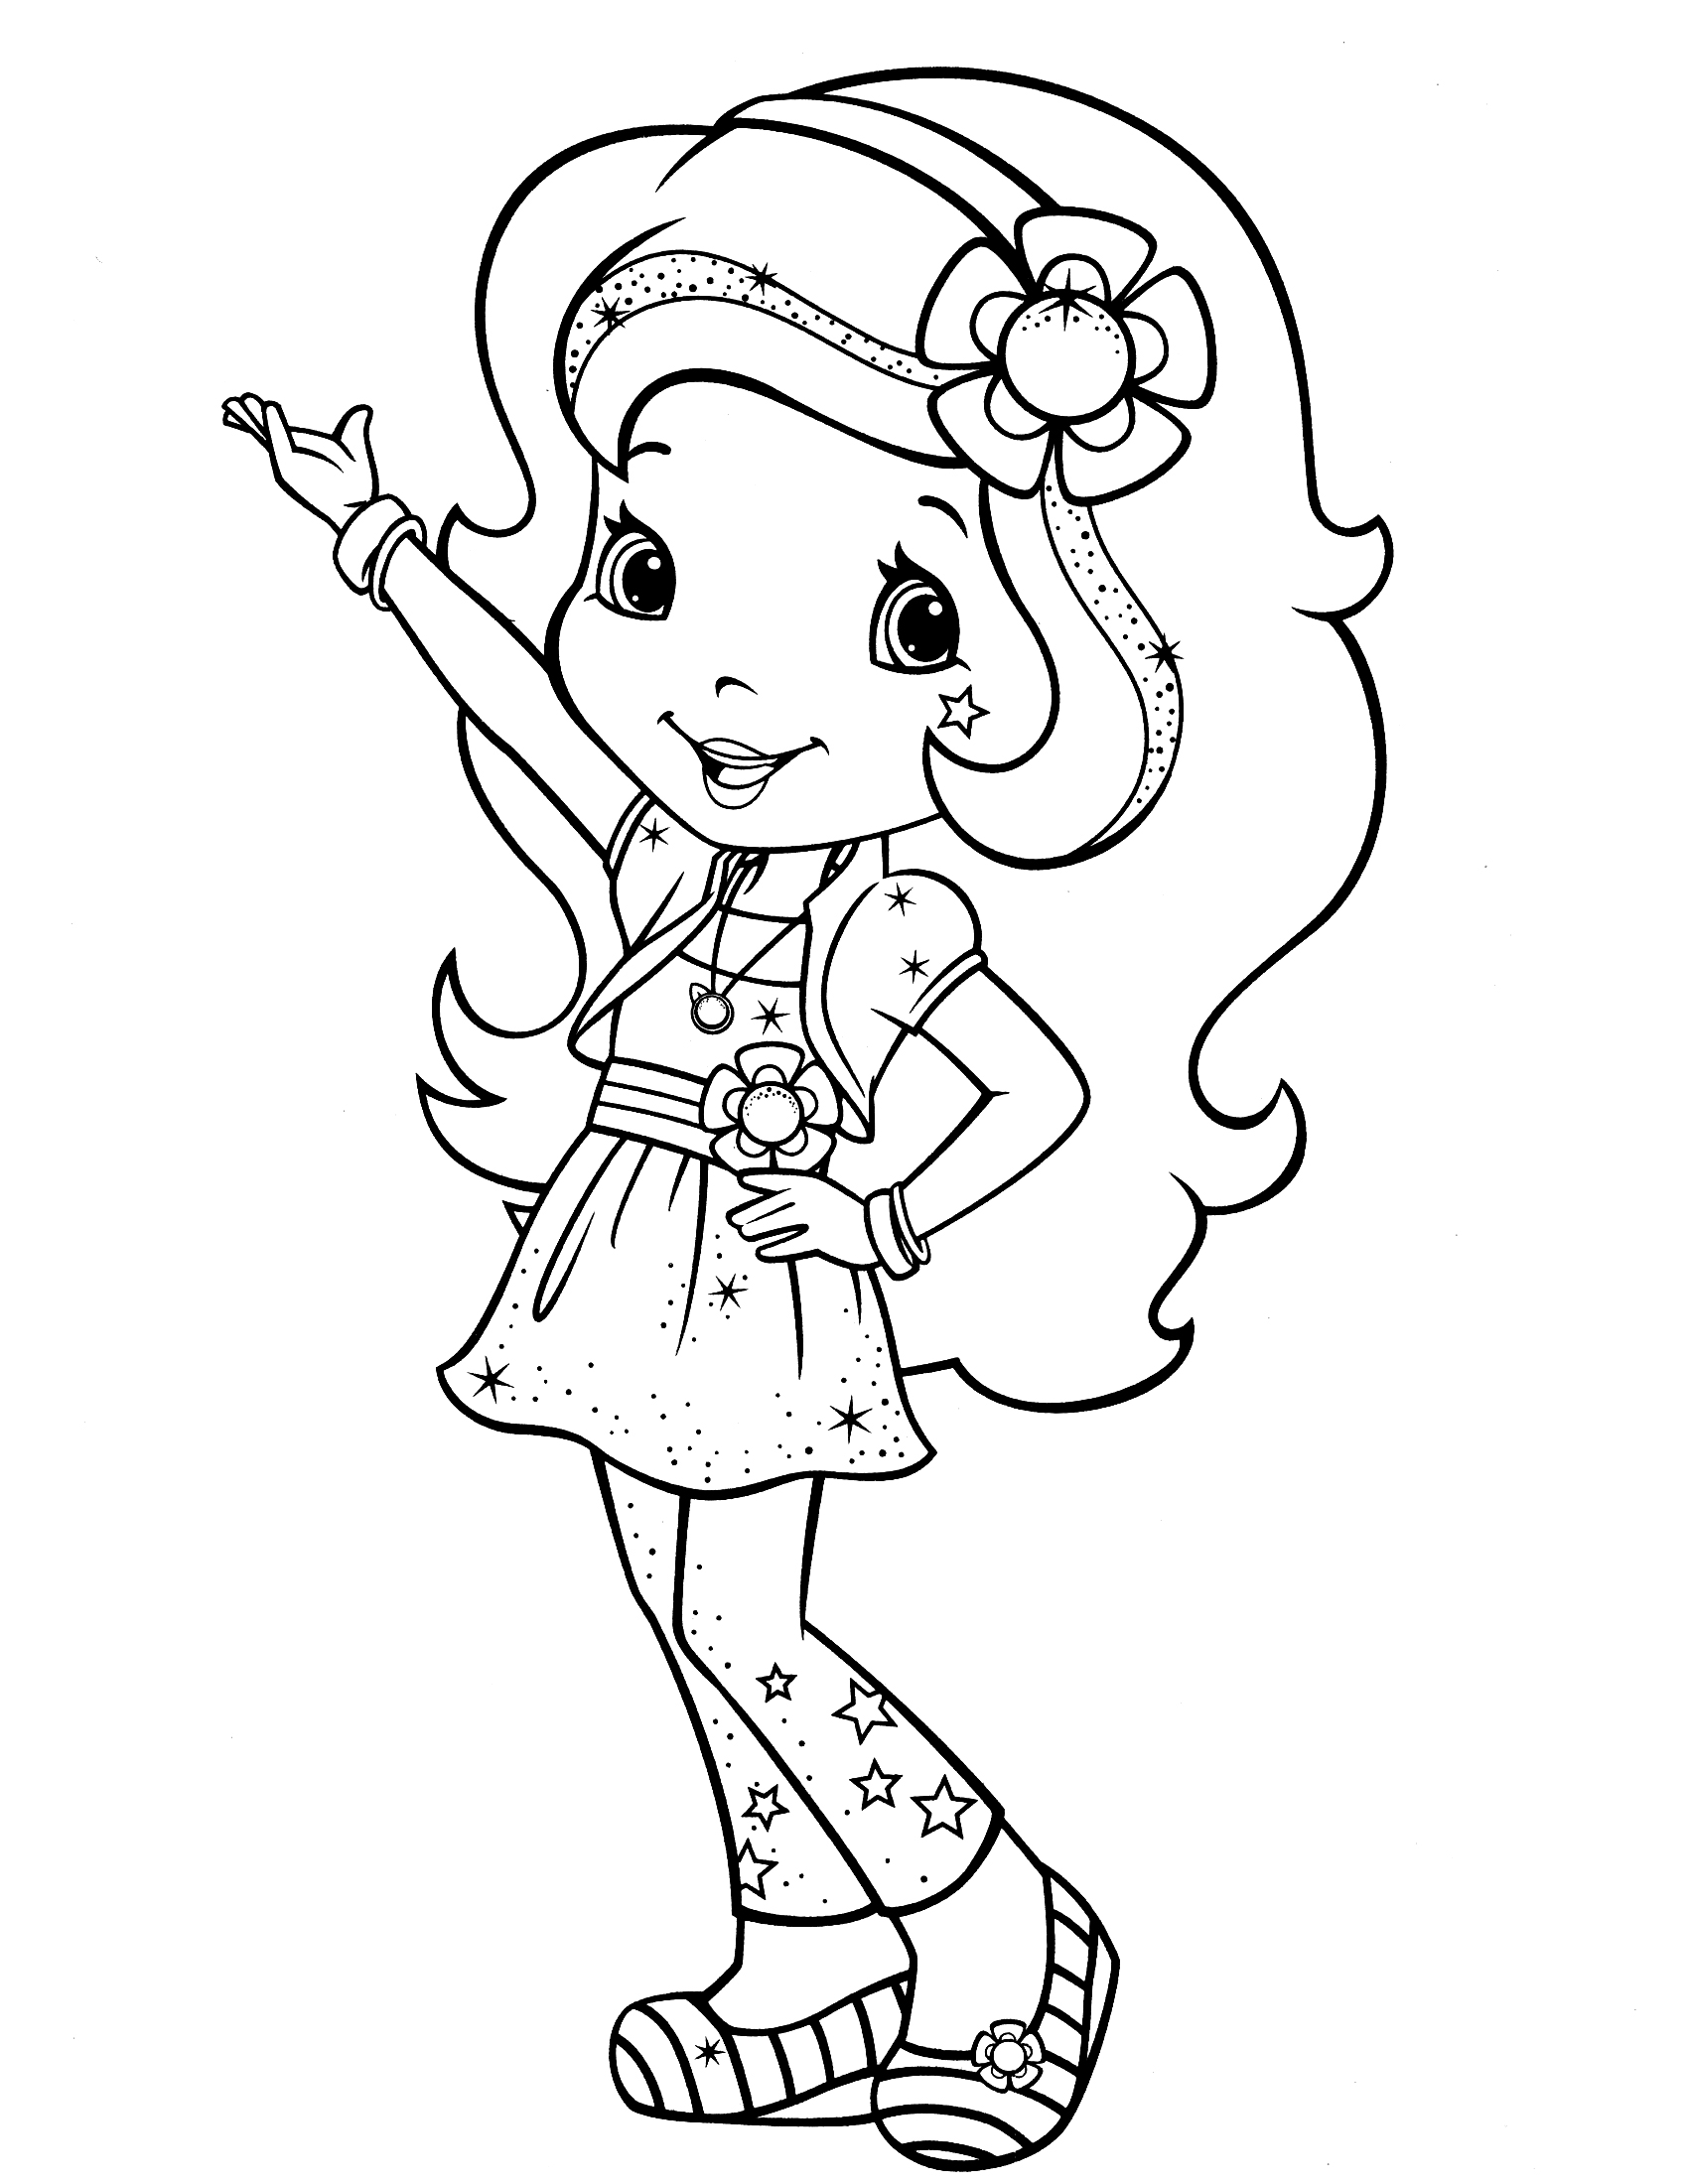 1700x2200 Strawberry Shortcake Coloring Pages Strawberry Shortcake Raspberry